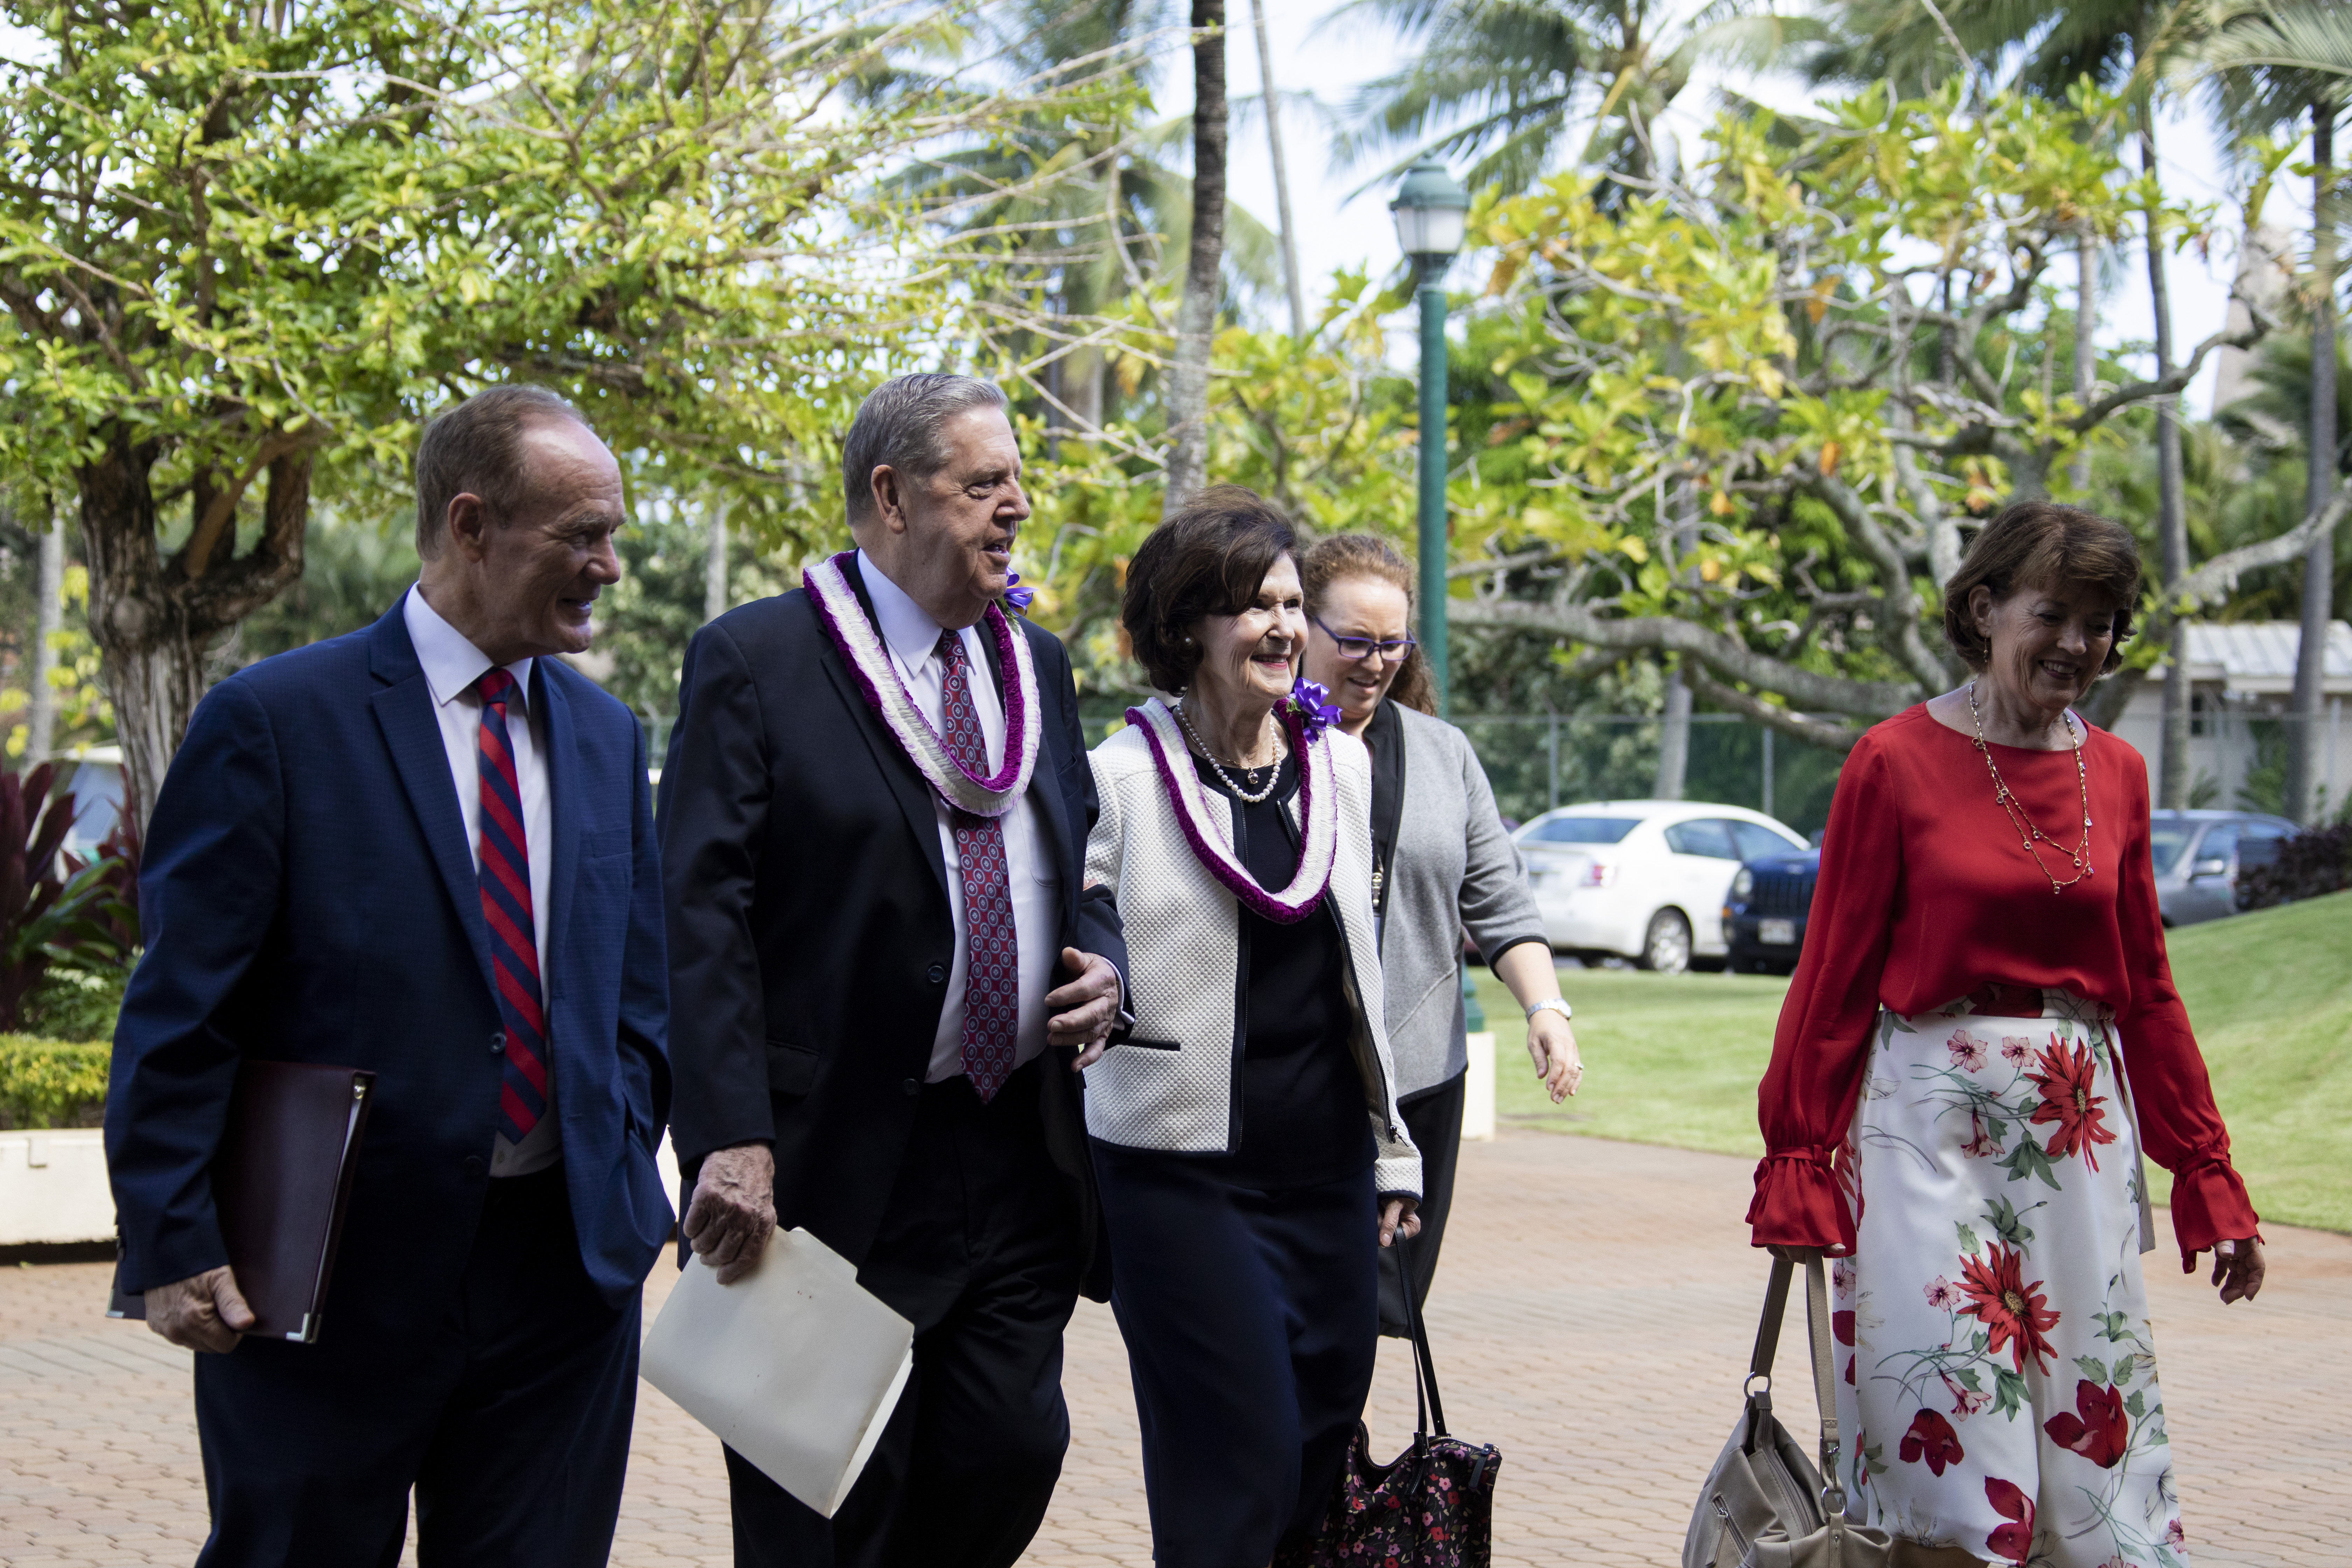 From left, President John S. Tanner, BYU-Hawaii president; Elder Jeffrey R. Holland; Sister Patricia Holland; and Sister Susan W. Tanner walk on the campus of BYU-Hawaii on Oct. 22.